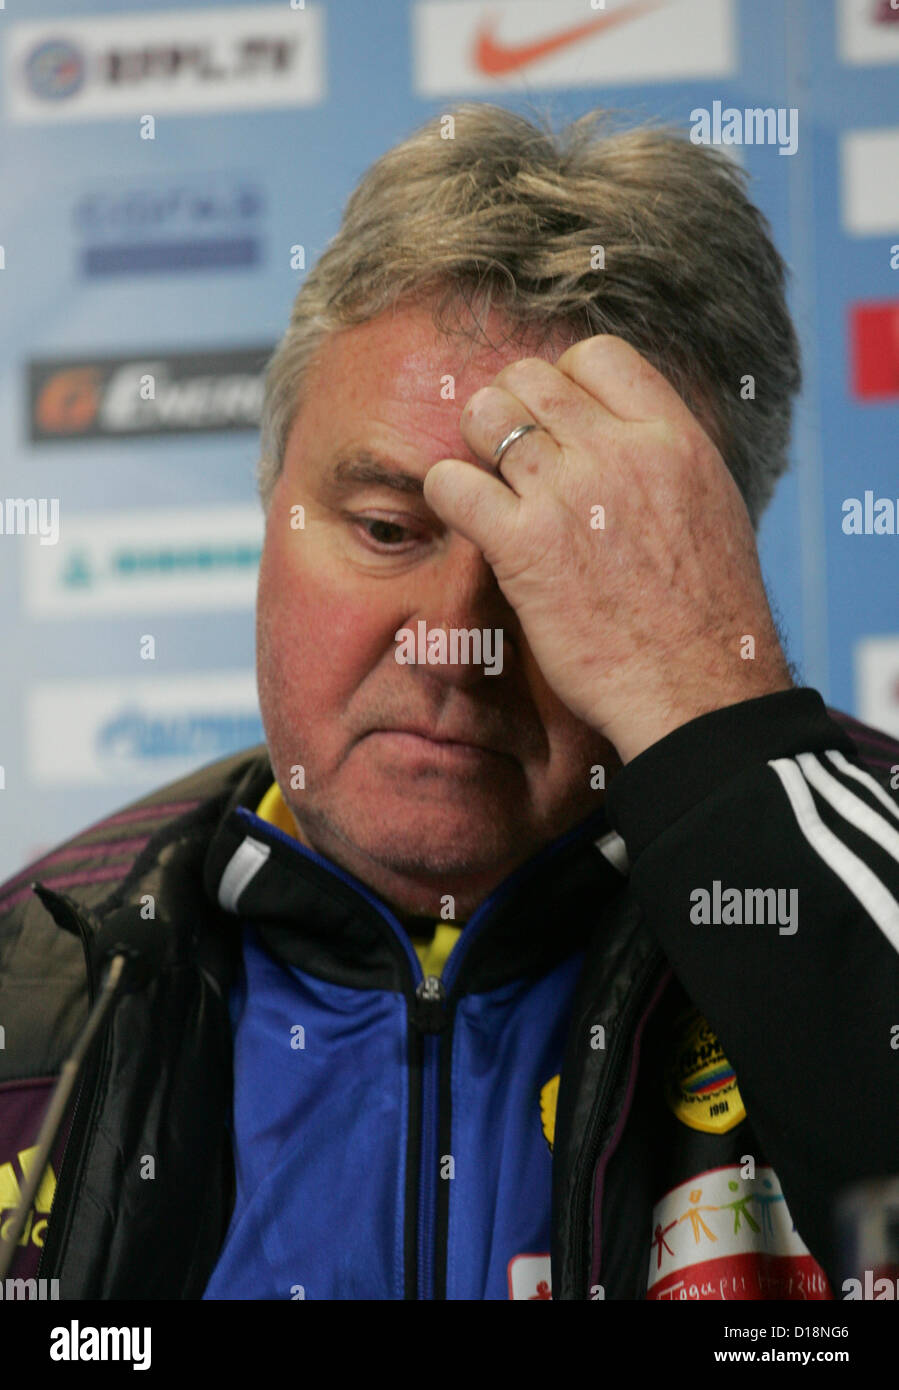 Guus Hiddink Stock Photos & Guus Hiddink Stock Images